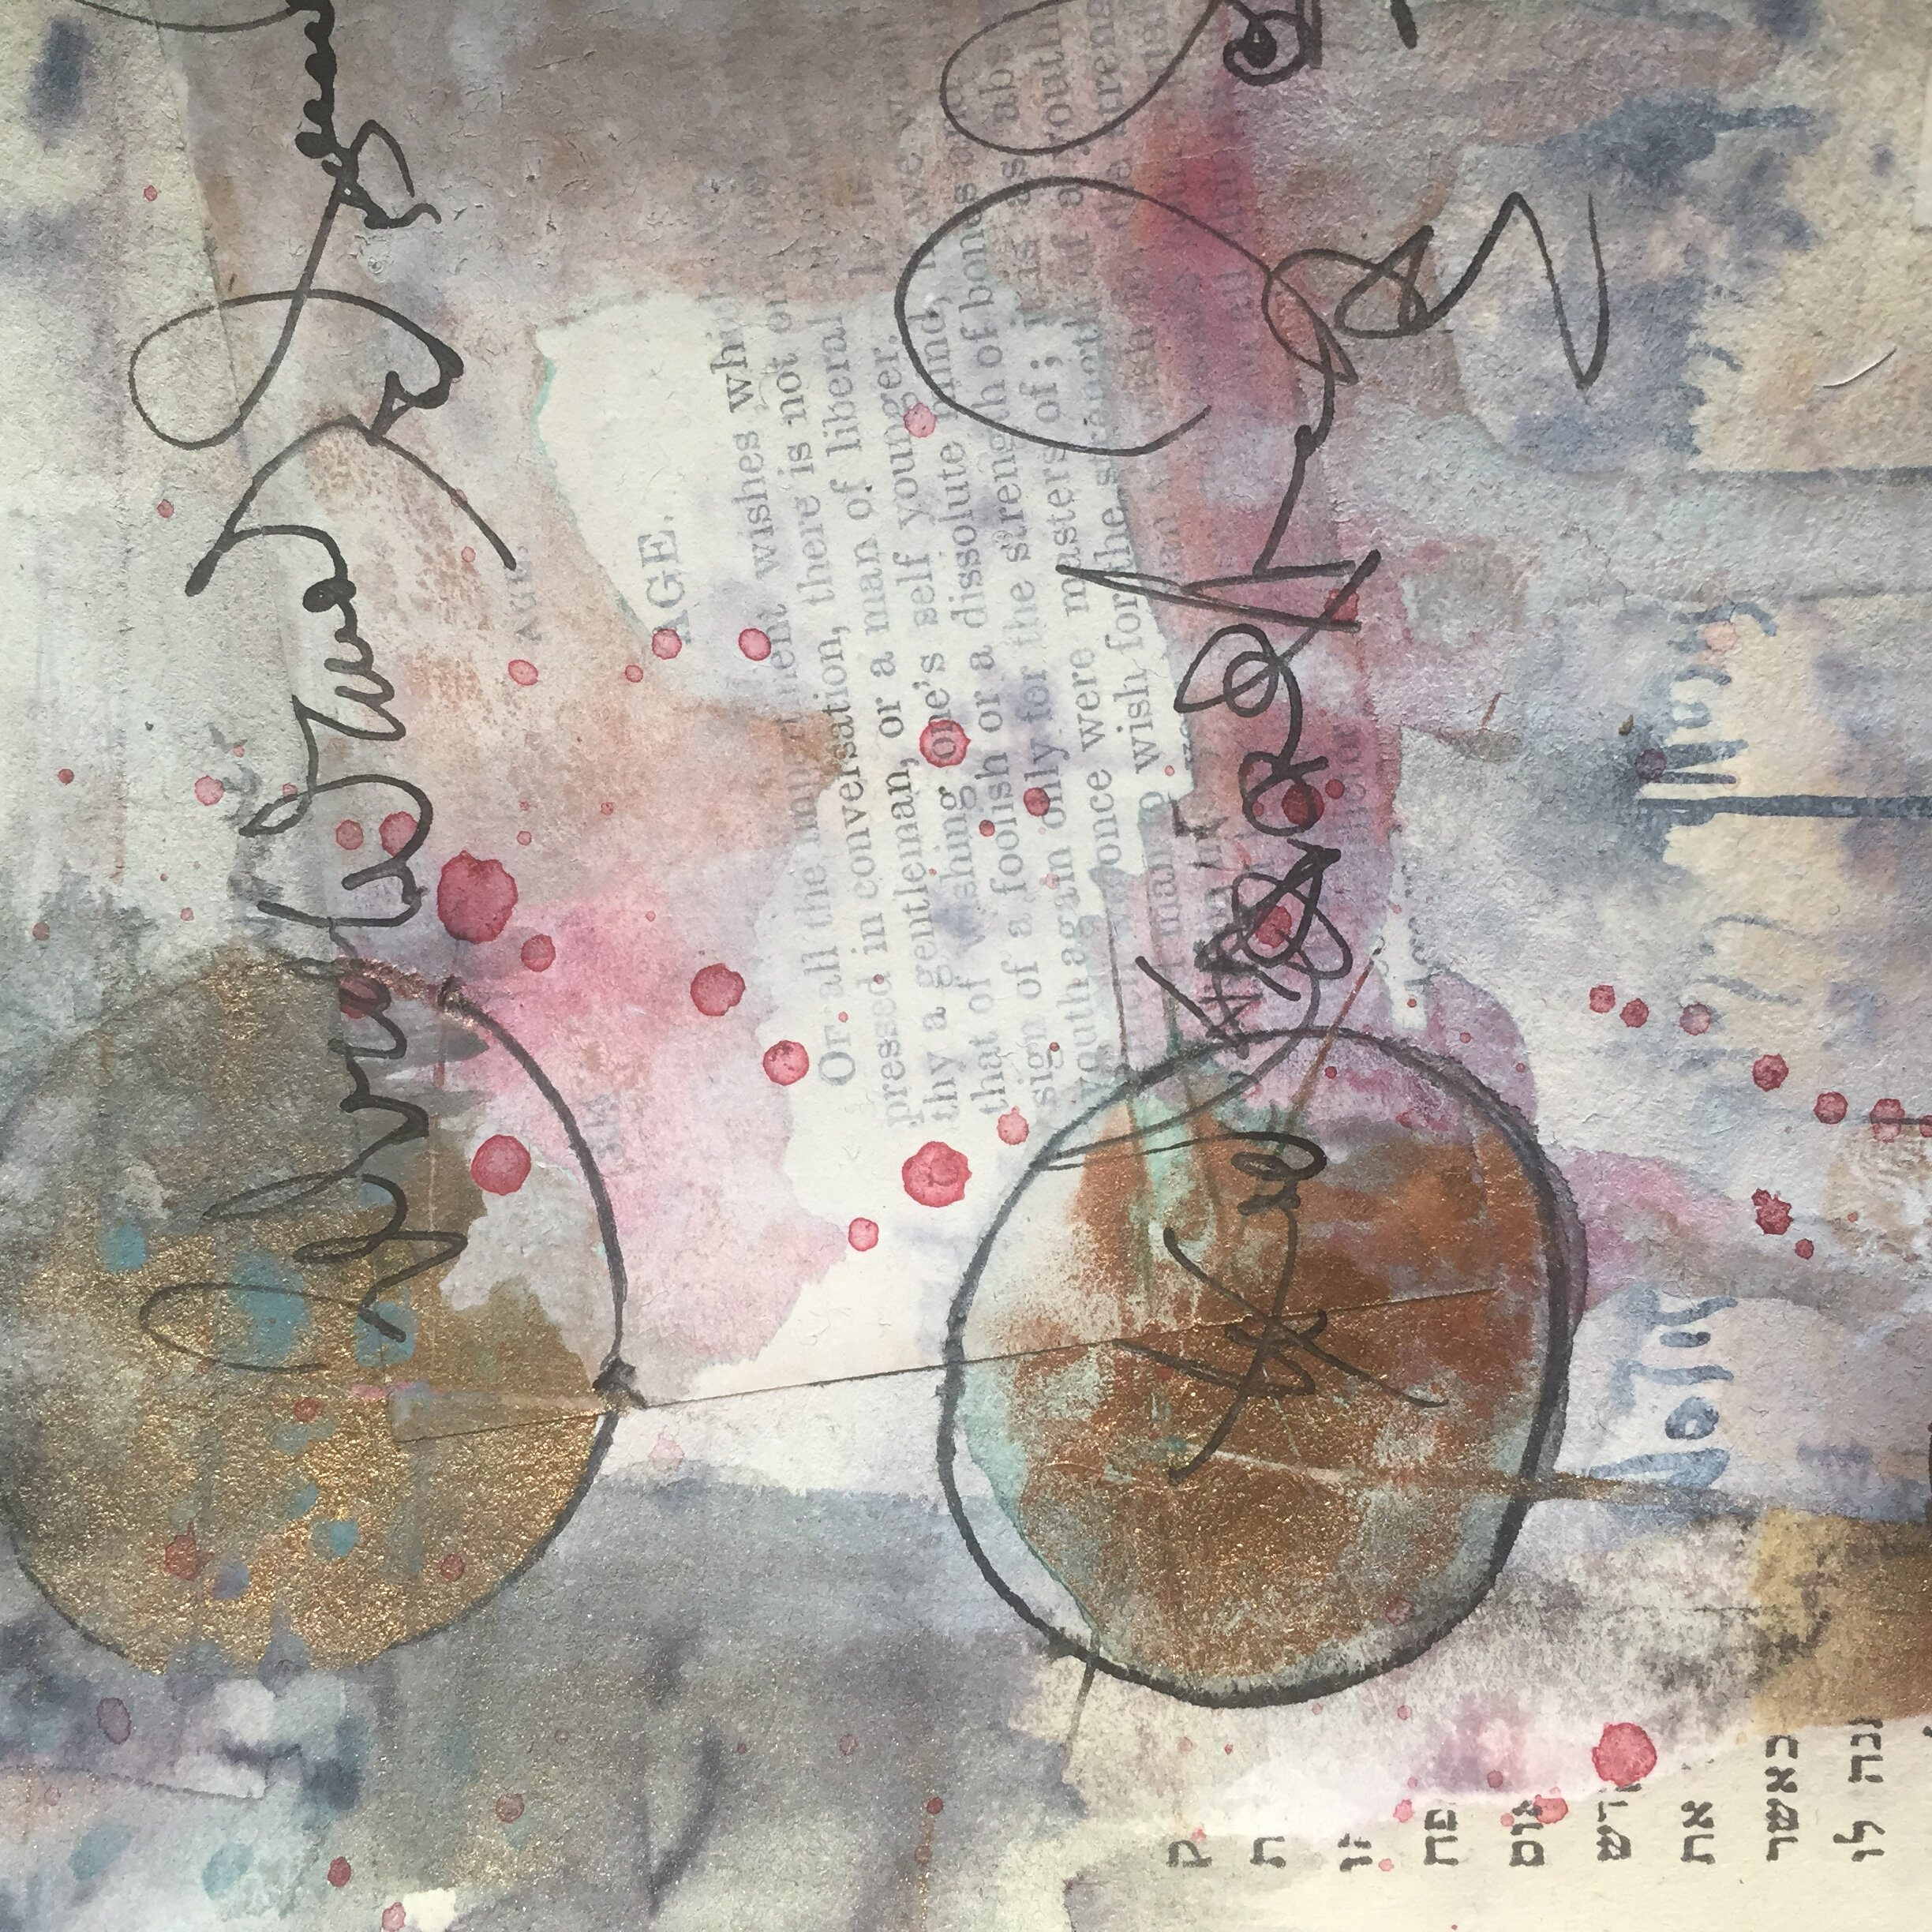 Wednesday November 13th 7pm-8:30pm  In this workshop we will investigate composition through the art of collage: approached as an inquiry, an experiment in decision-making and an opportunity for unexpected revelations. We will explore texture, the aesthetics of text and the possibilities of asemic (wordless) writing. We will examine the concept(s) of wabi sabi (un-tamed beauty) and abstraction, and attempt to meet at the crossroads of spontaneity and design. Each of us will emerge with an original piece(s) of work, which we will then deconstruct/decode/decipher to reveal elements of our own personal symbolism. Open and accessible to all manner of the curious, intrepid and the skeptical.  Materials will be provided, but do bring any scraps of interesting text or images, old books, (to be torn) or other 2-dimentional ephemera, as well as any (quick drying) inks, markers or paints you'd like to work with. UnSungStudio.net  There will be an anonymous contribution box at the door.  Suggested value is $35. Cash, check, or PayPal.  Contact Regan with any questions: rdrouin26@gmail.com